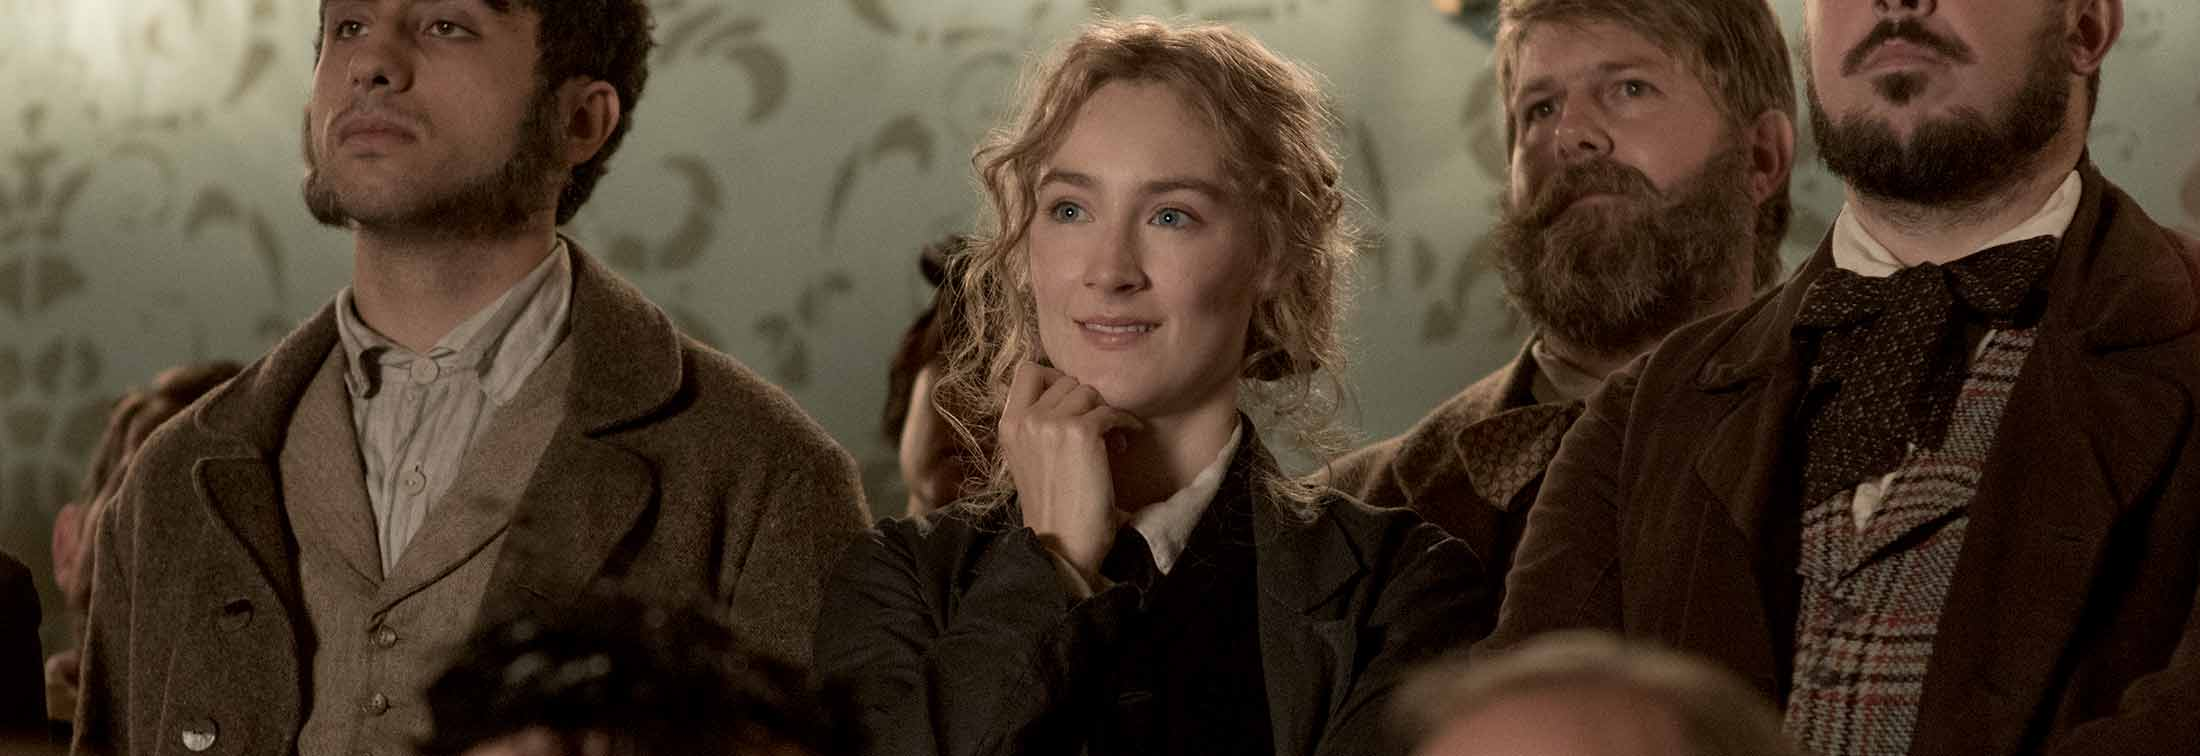 Little Women - Greta Gerwig touches the sublime with another American masterpiece